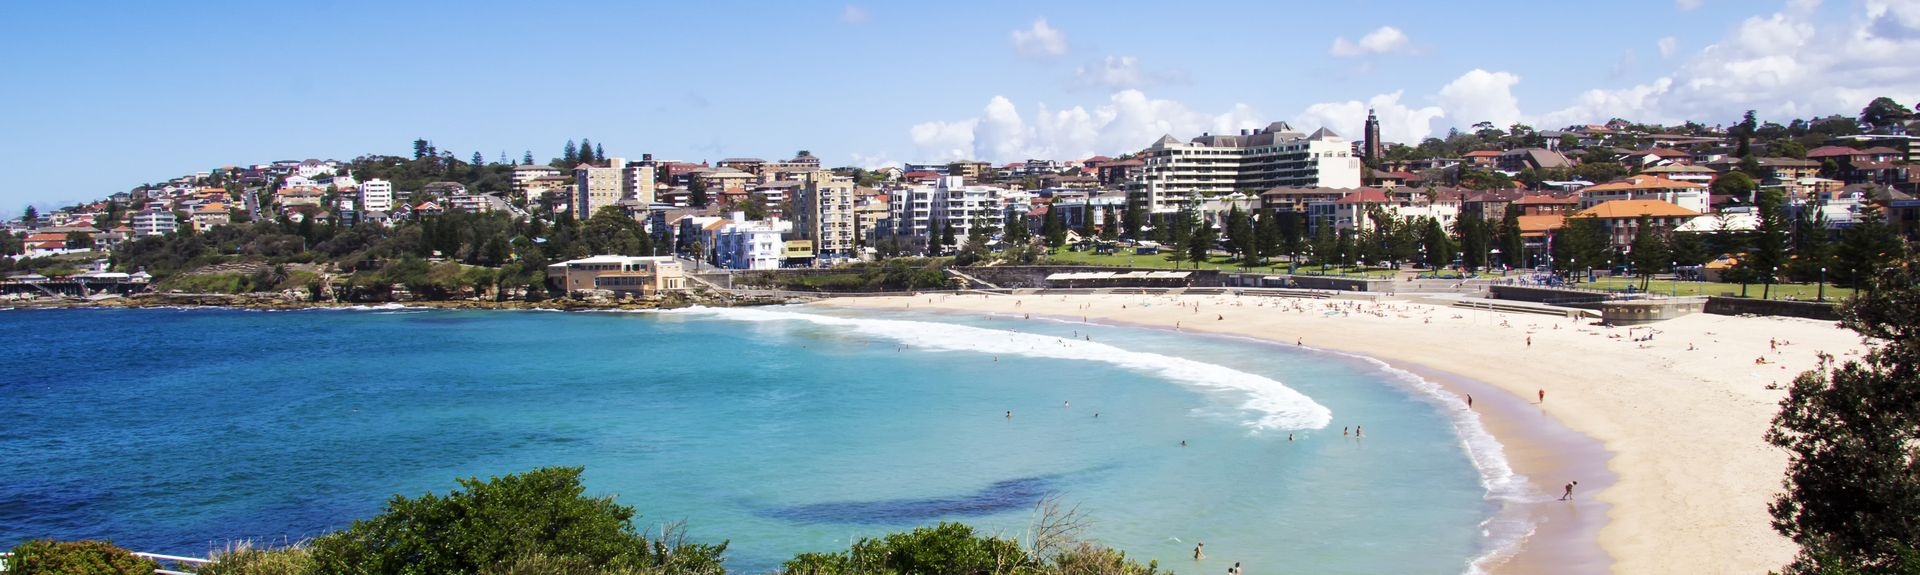 Coogee, Sydney, New South Wales, Australia